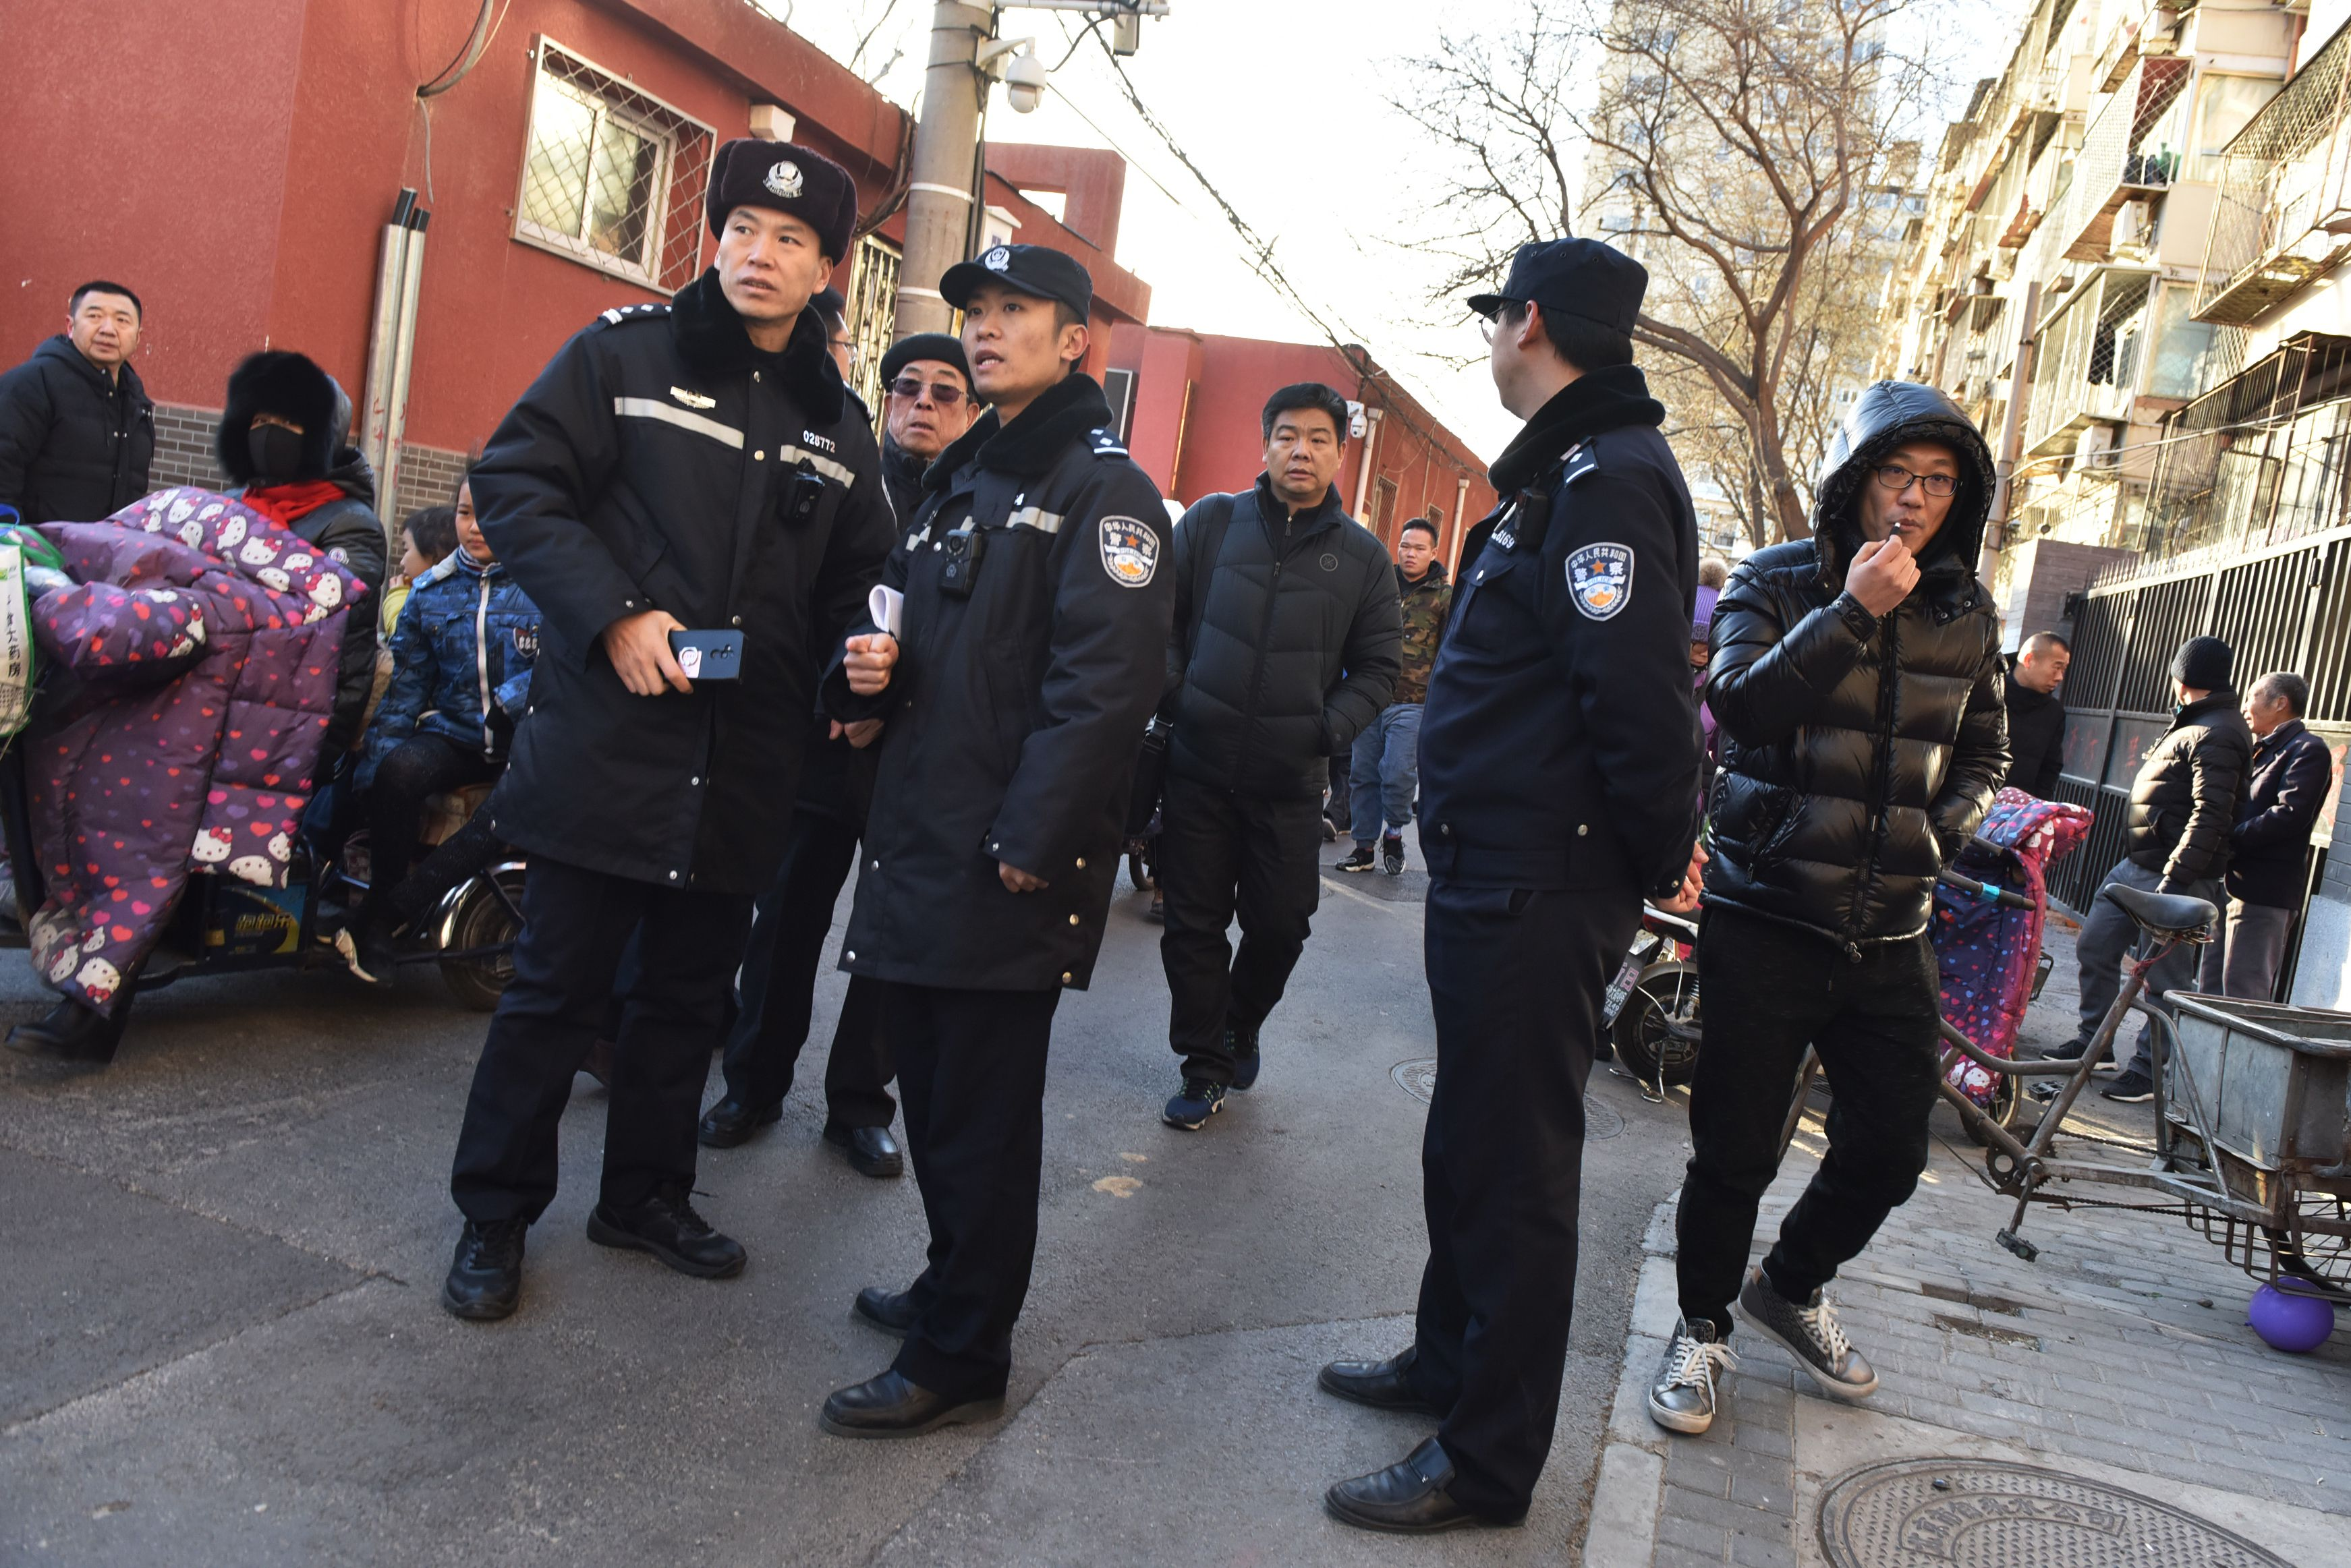 Police stand outside the gate of an elementary school where an attack took place in Beijing on January 8, 2019. (GREG BAKER/AFP/Getty Images)